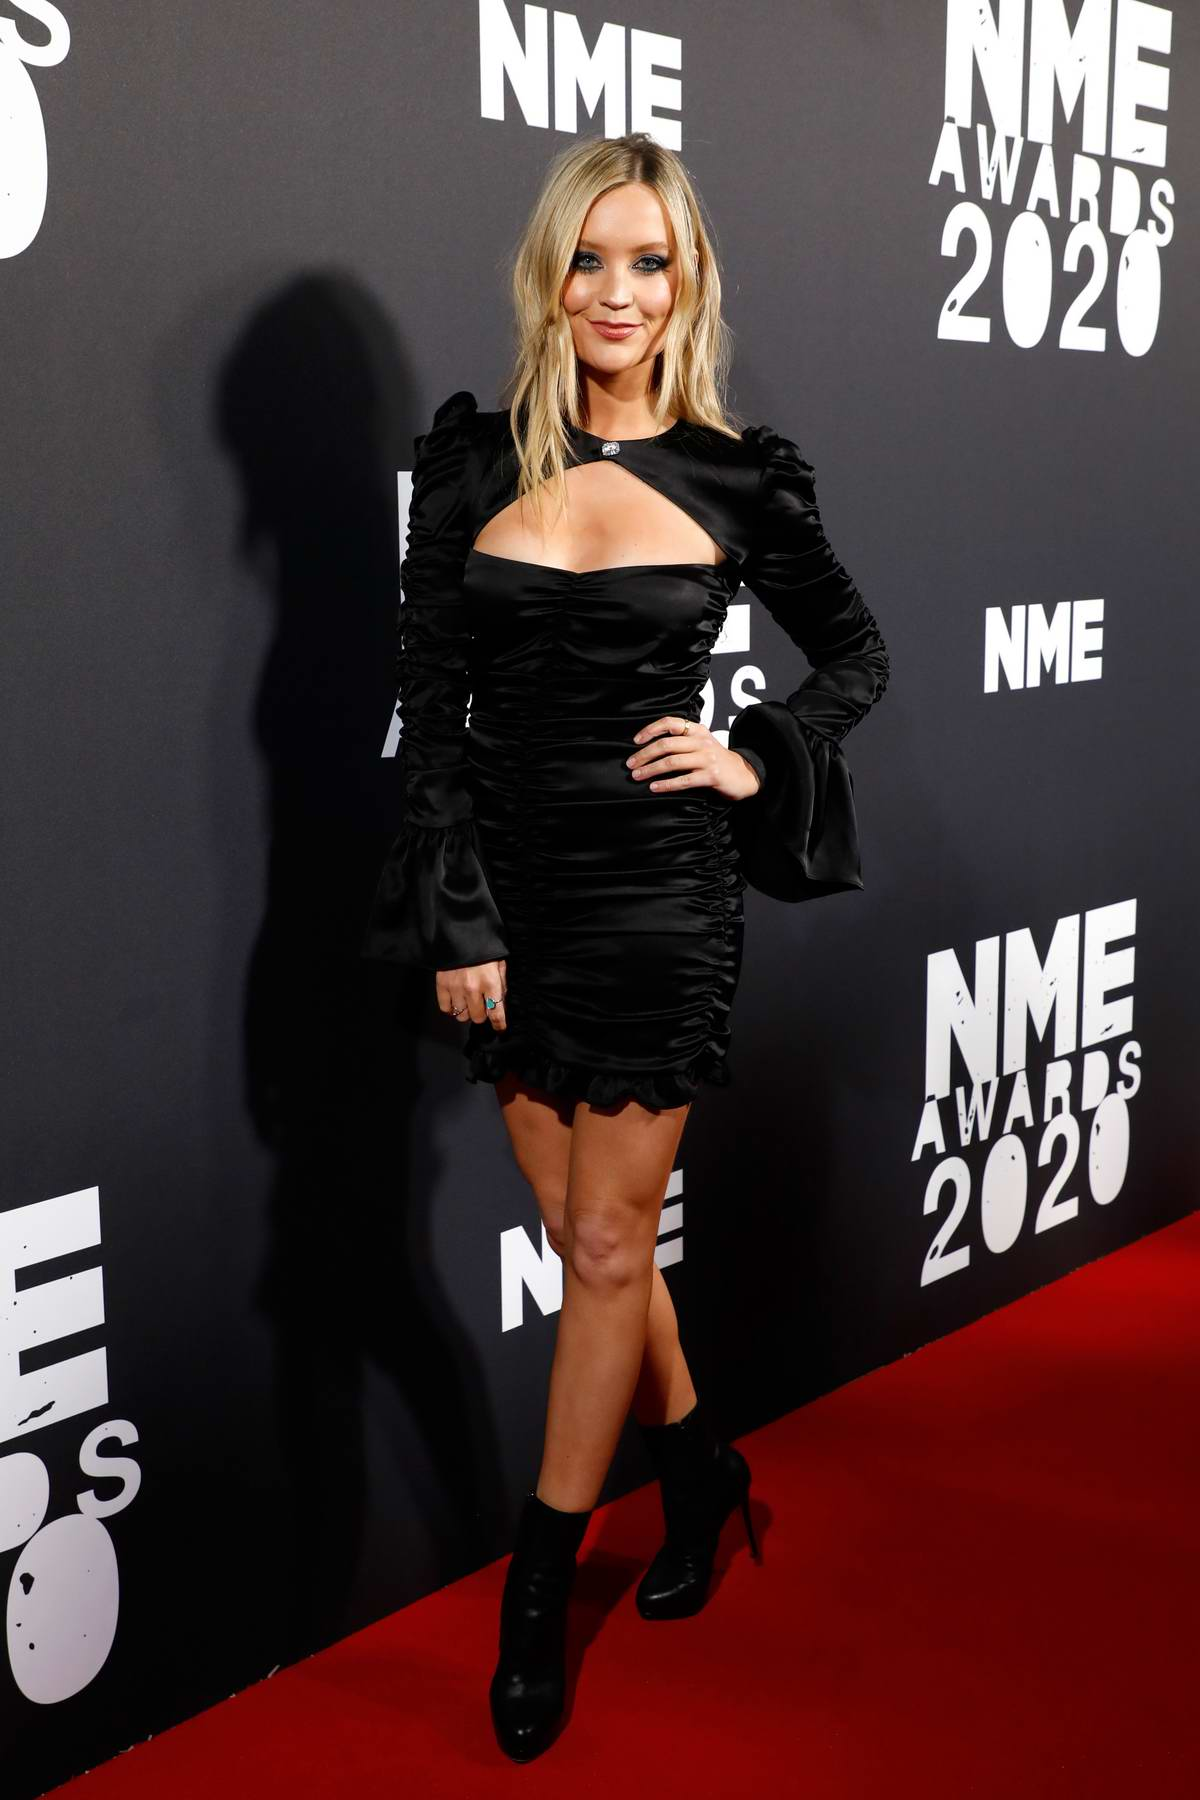 Laura Whitmore attends the NME Awards 2020 at O2 Academy Brixton in London, UK